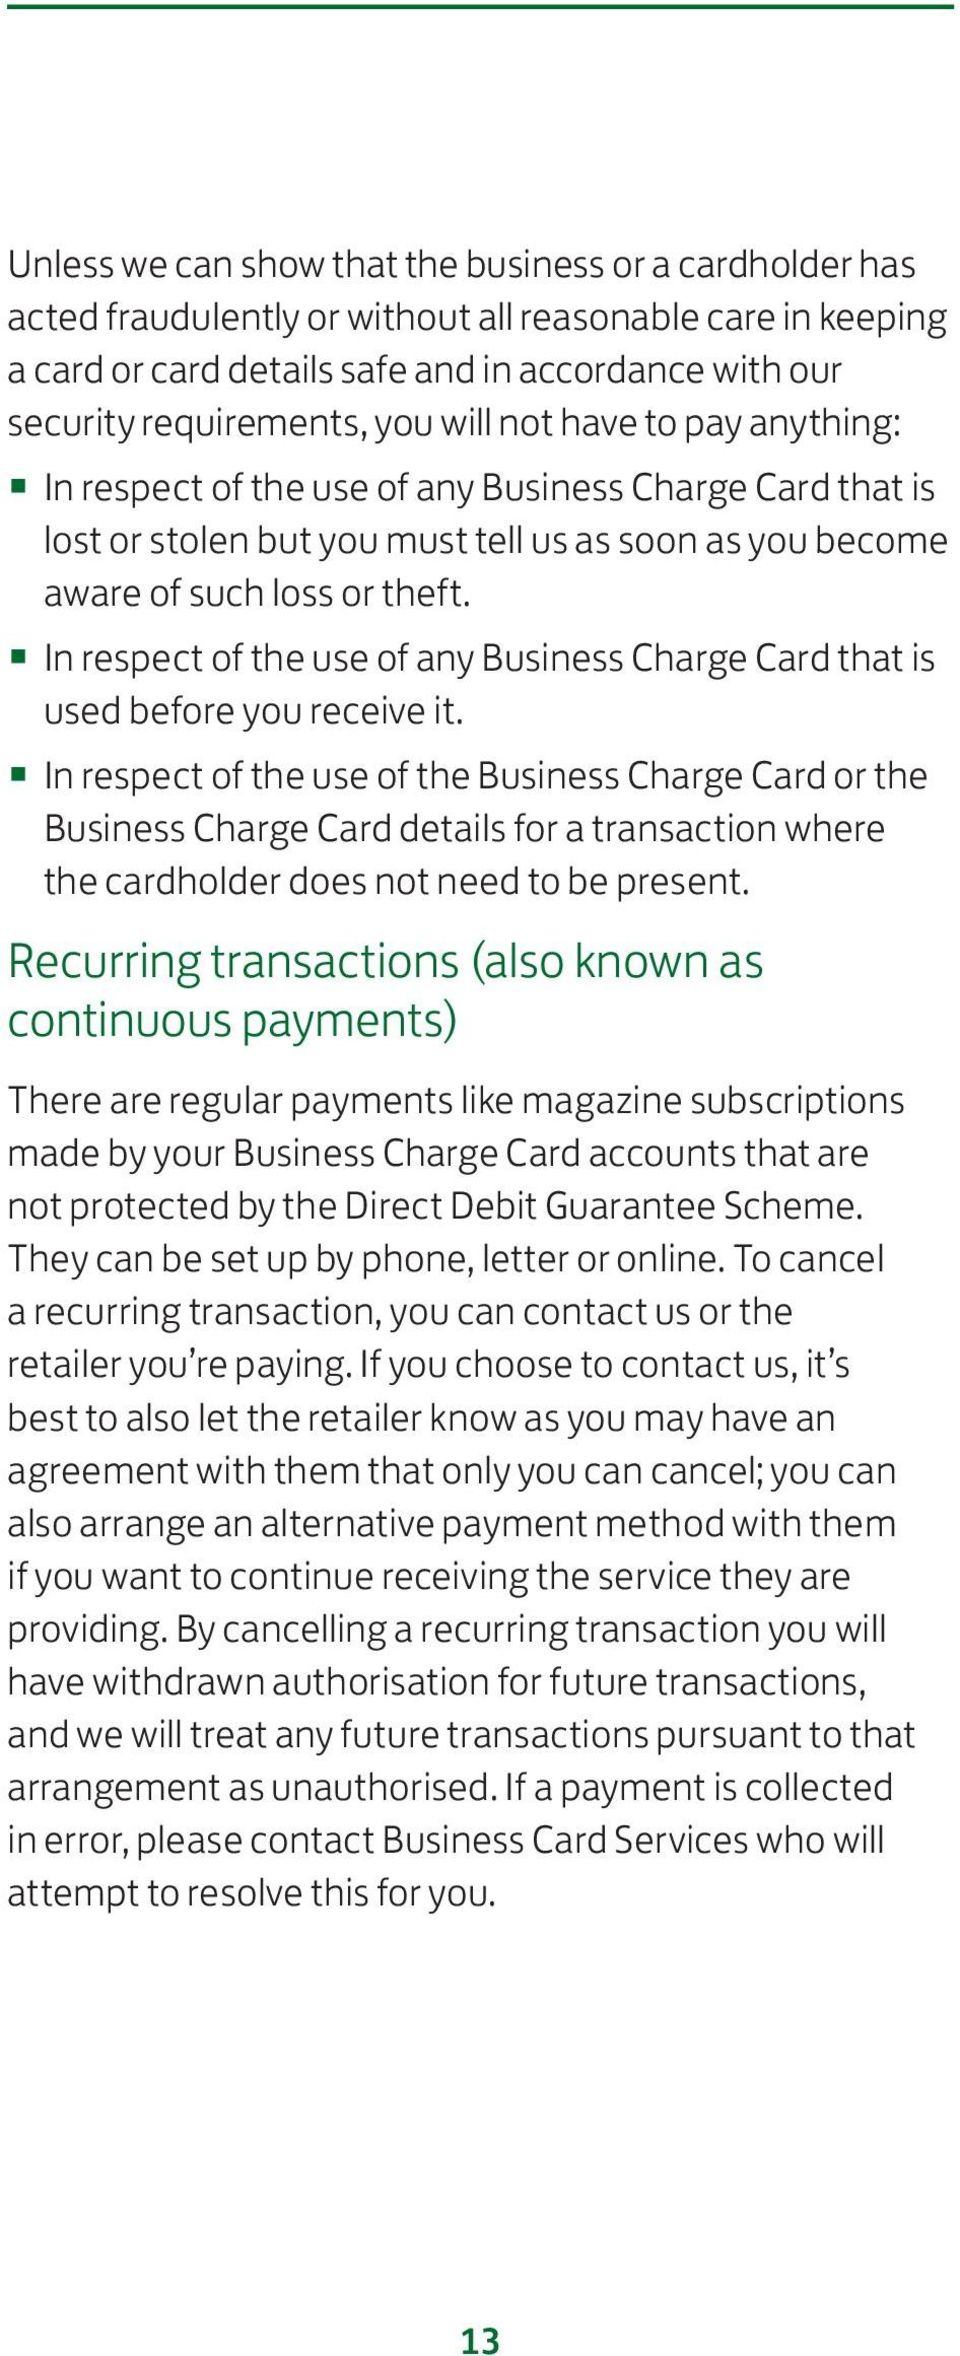 In respect of the use of any Business Charge Card that is used before you receive it.